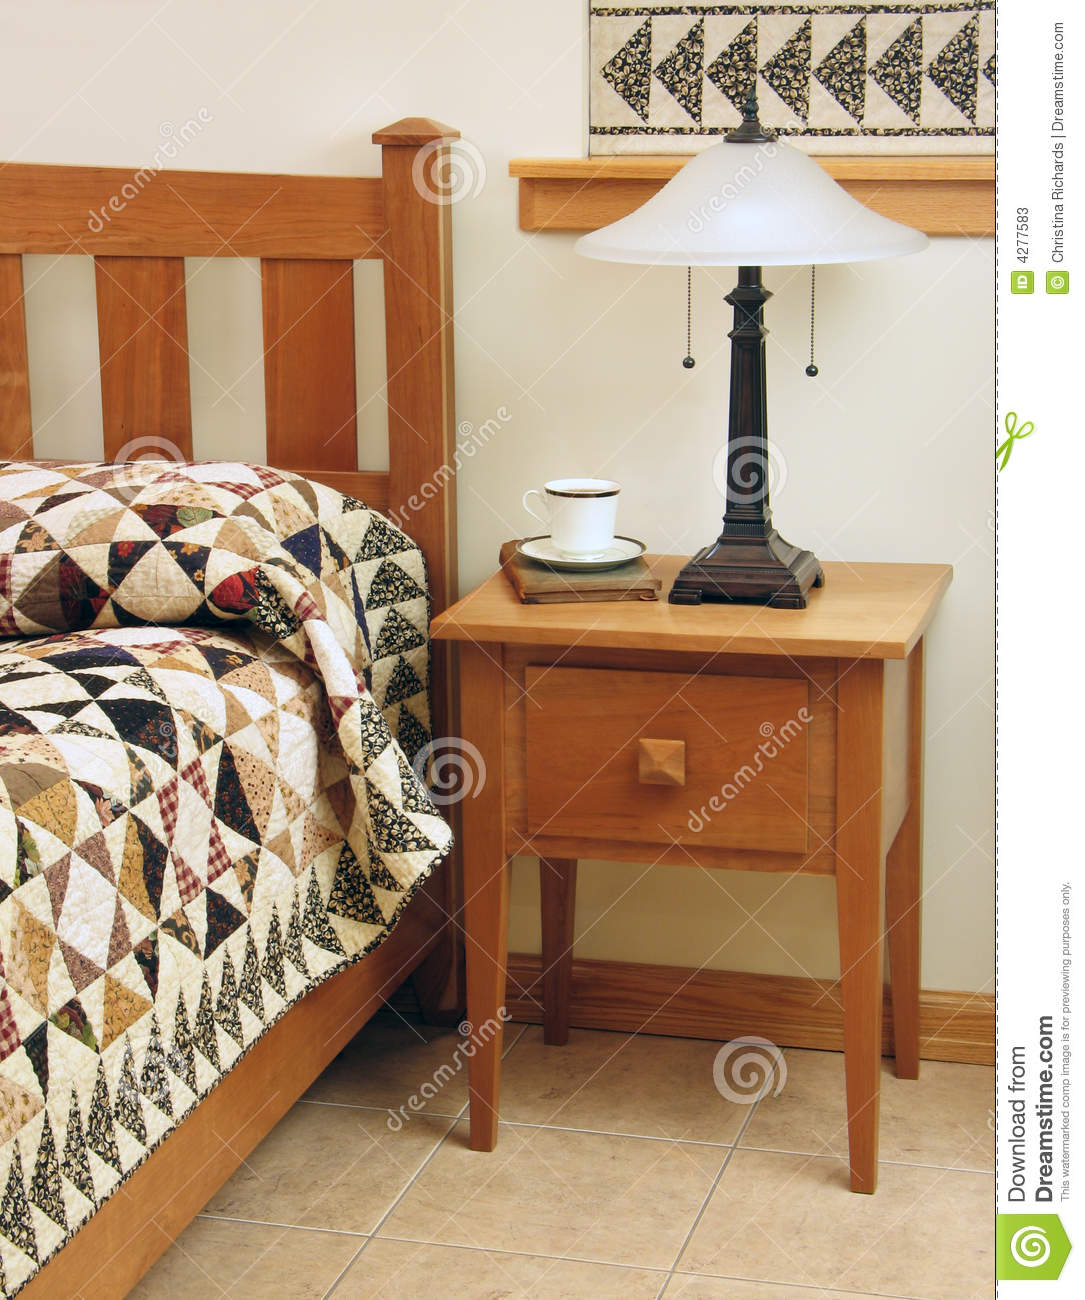 Bedroom With Shaker-style Furniture Stock Image - Image: 4277583